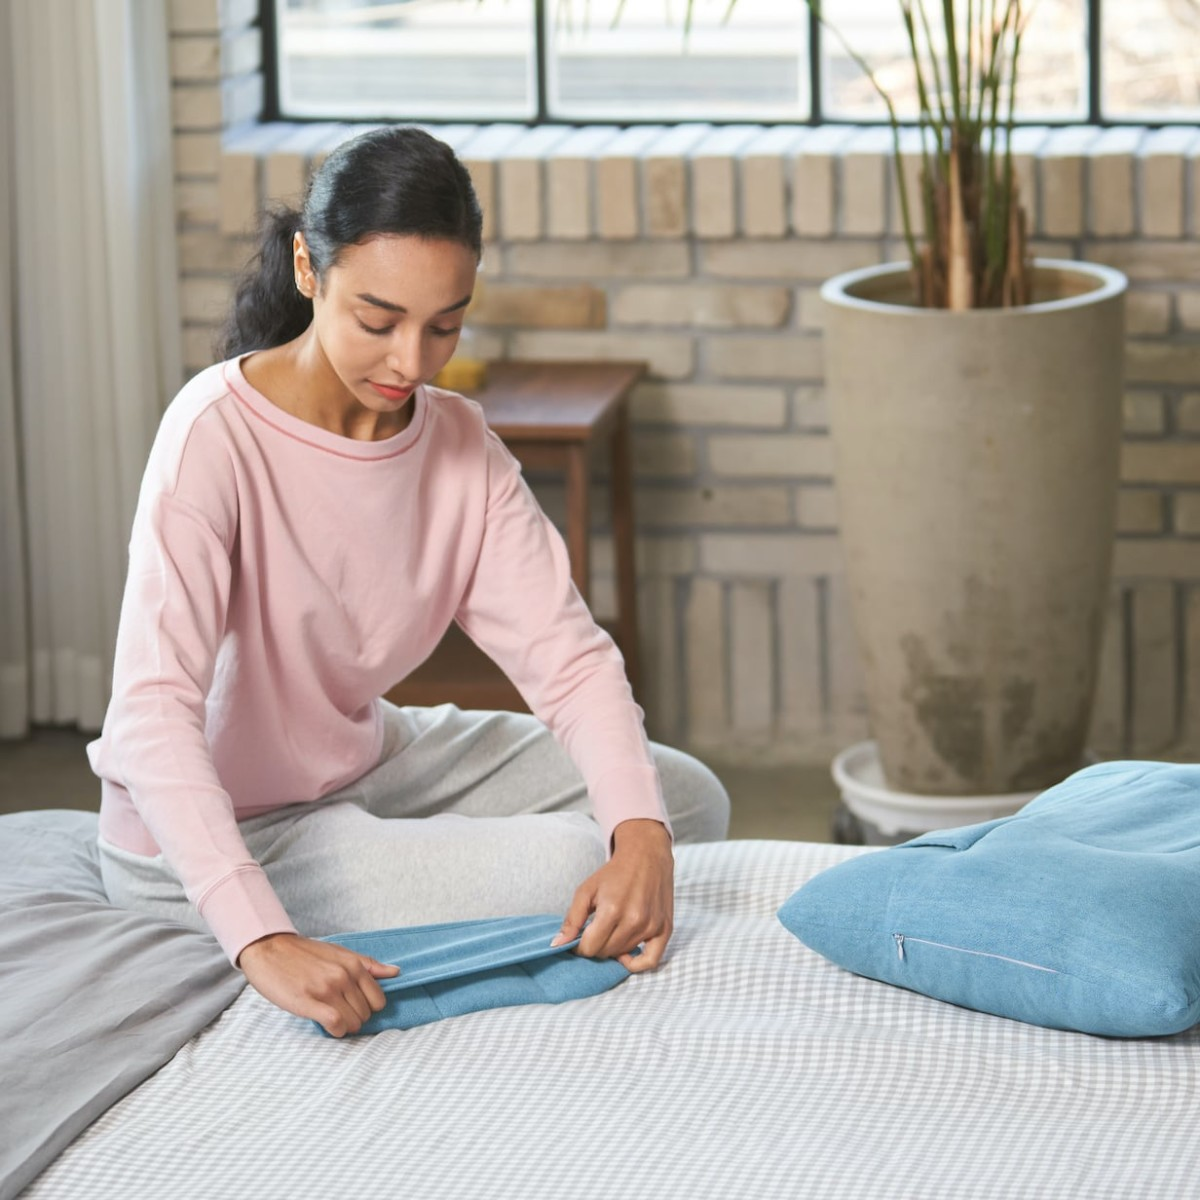 Dullo+ Cooling Pillow provides neck support no matter which way you sleep